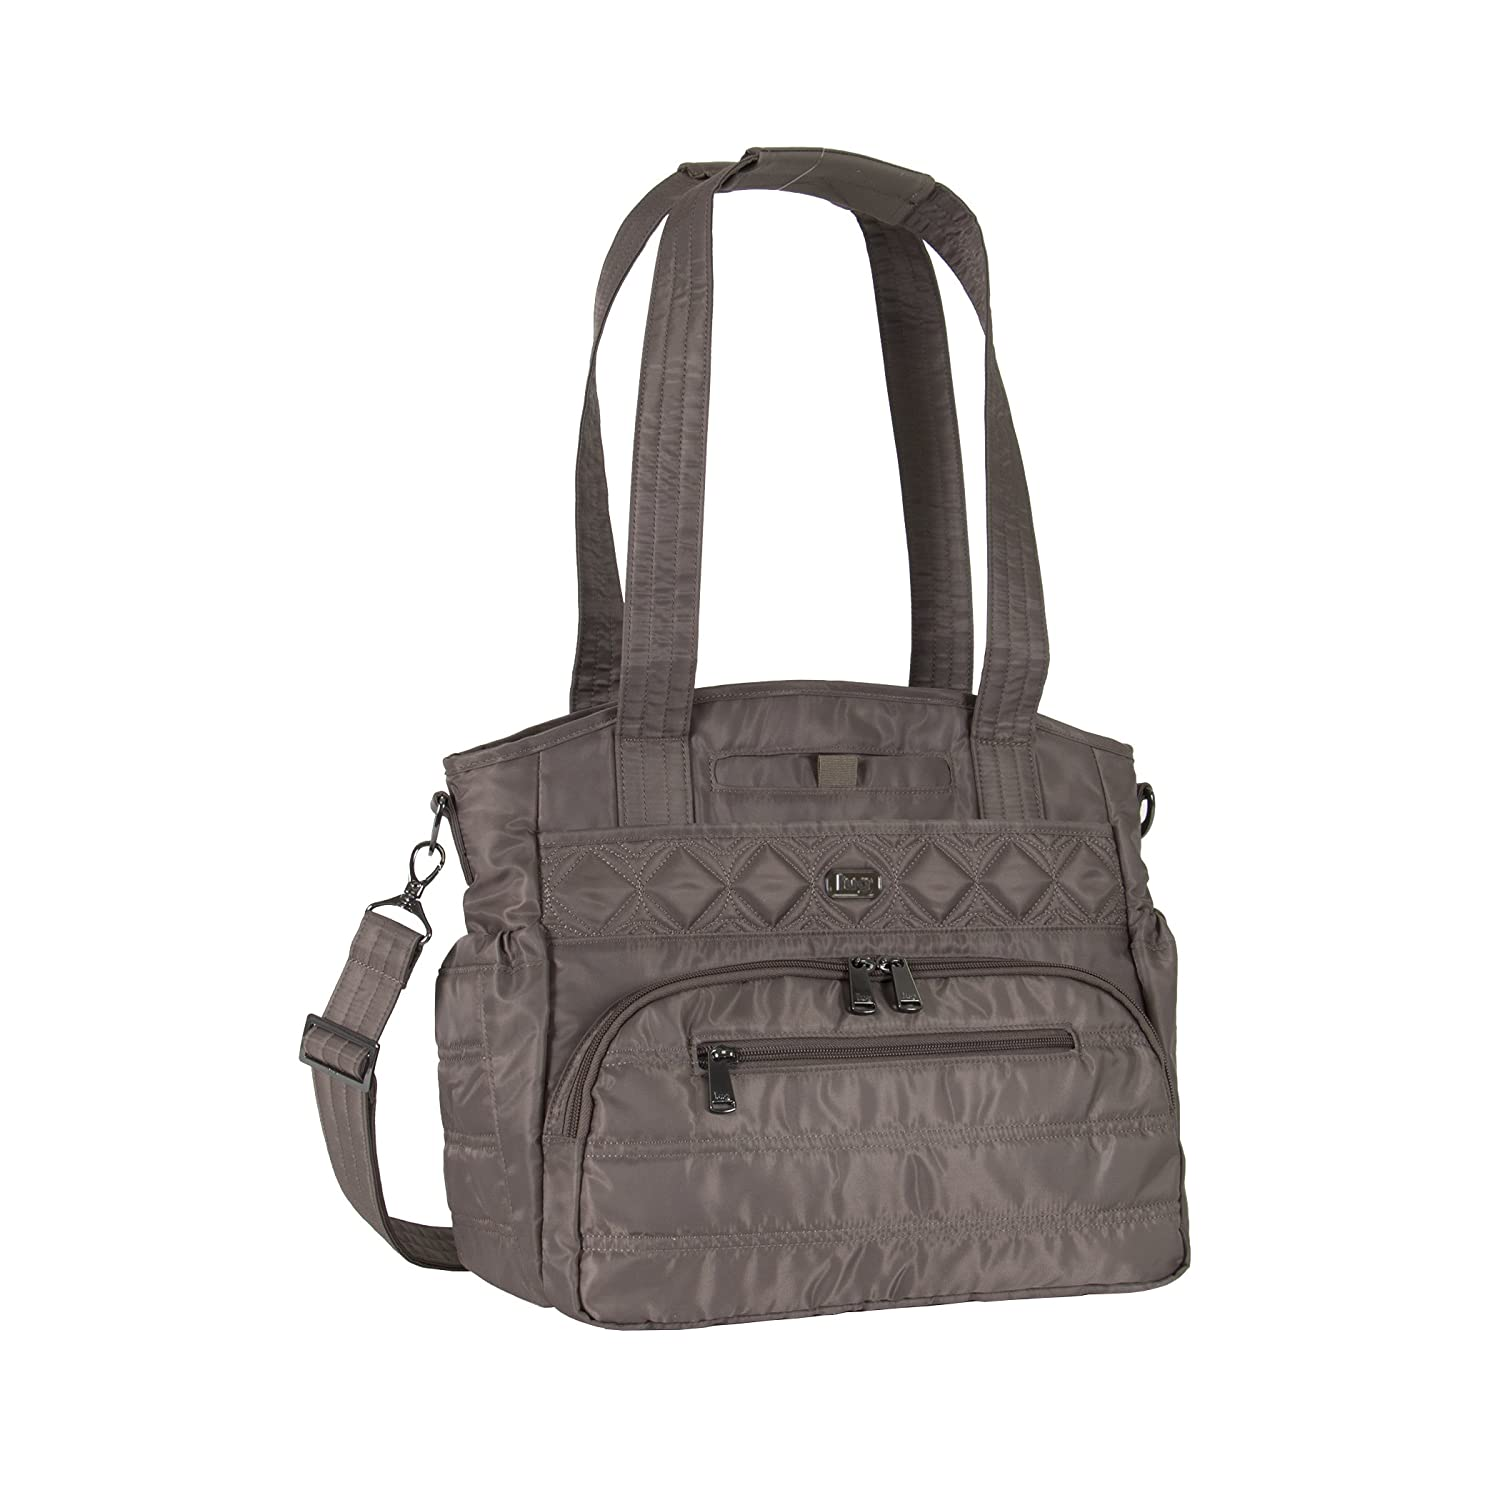 Lug Women's Windjammer Everyday Travel Tote, Walnut Brown, One Size LUGCA WINDJAMMER.v.2-WALNUT BROWN